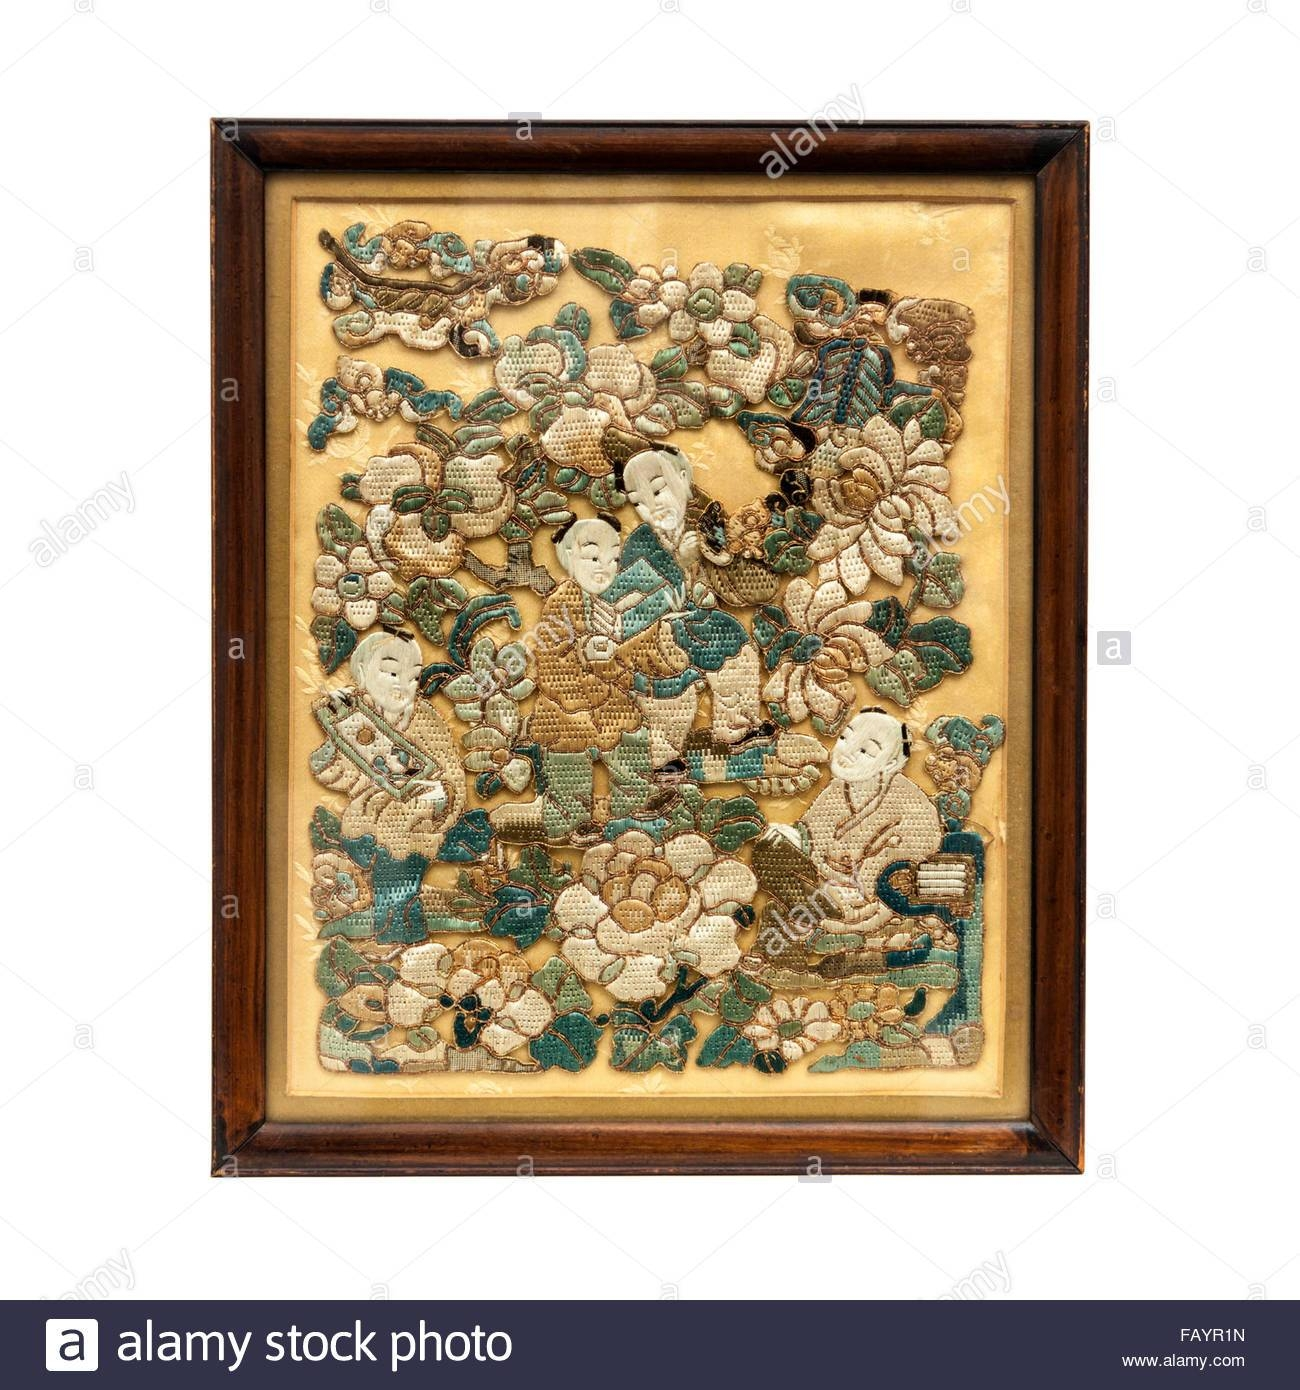 Antique 19Th Century Chinese Or Japanese Embroidered Wall Panel In Intended For 2018 Japanese Wall Art Panels (View 5 of 25)